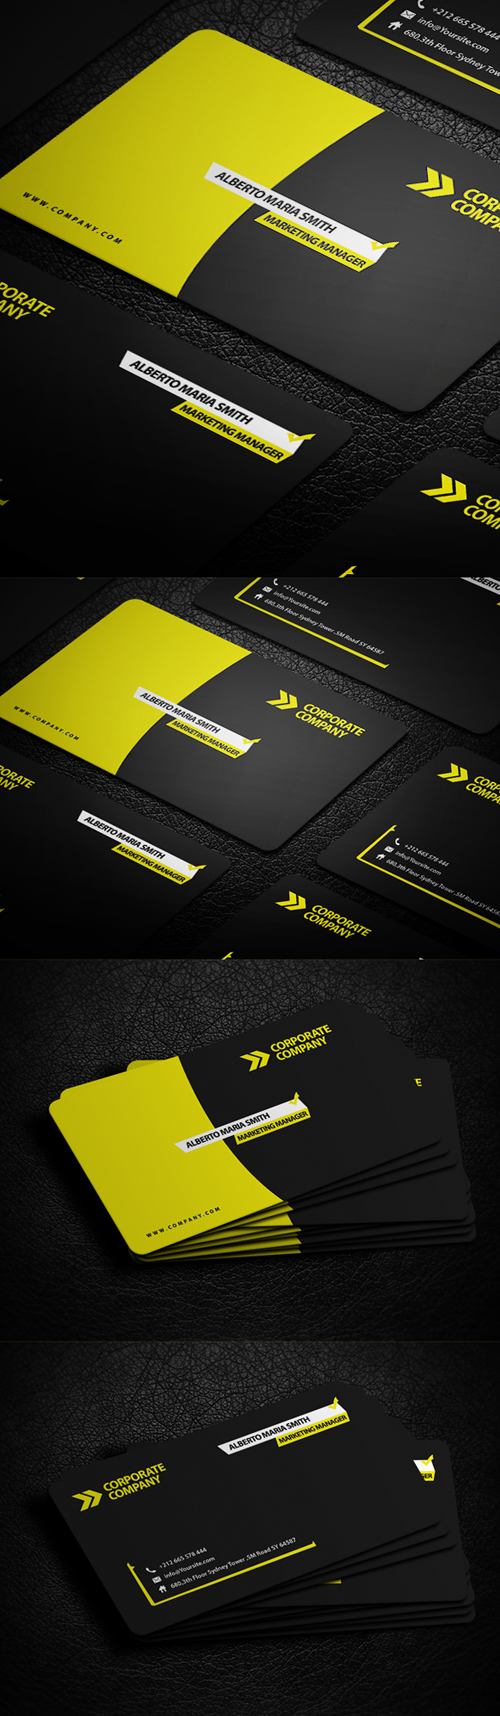 business cards template design - 11